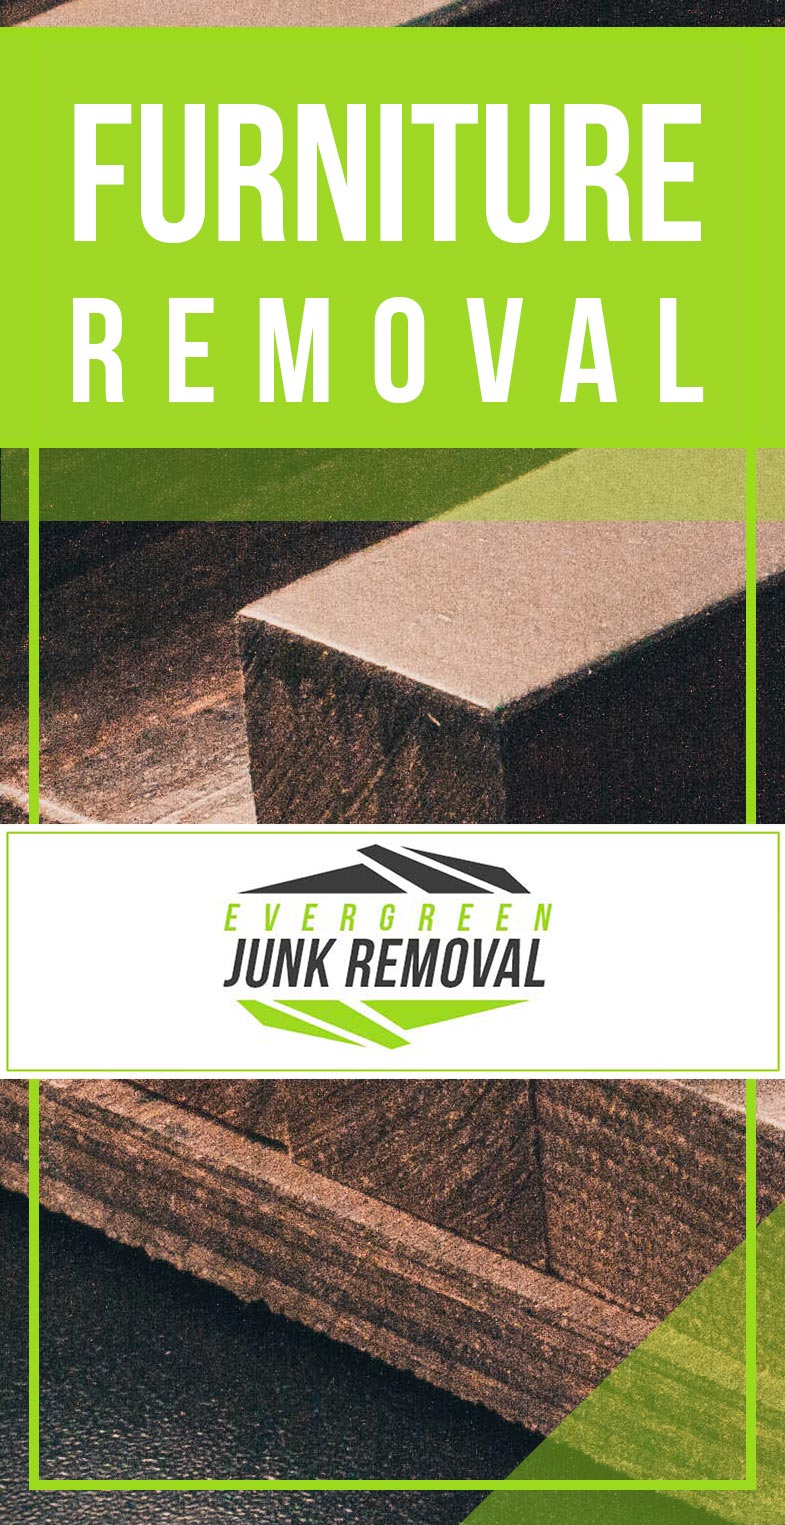 Junk Removal Royal Palm Beach Furniture Removal